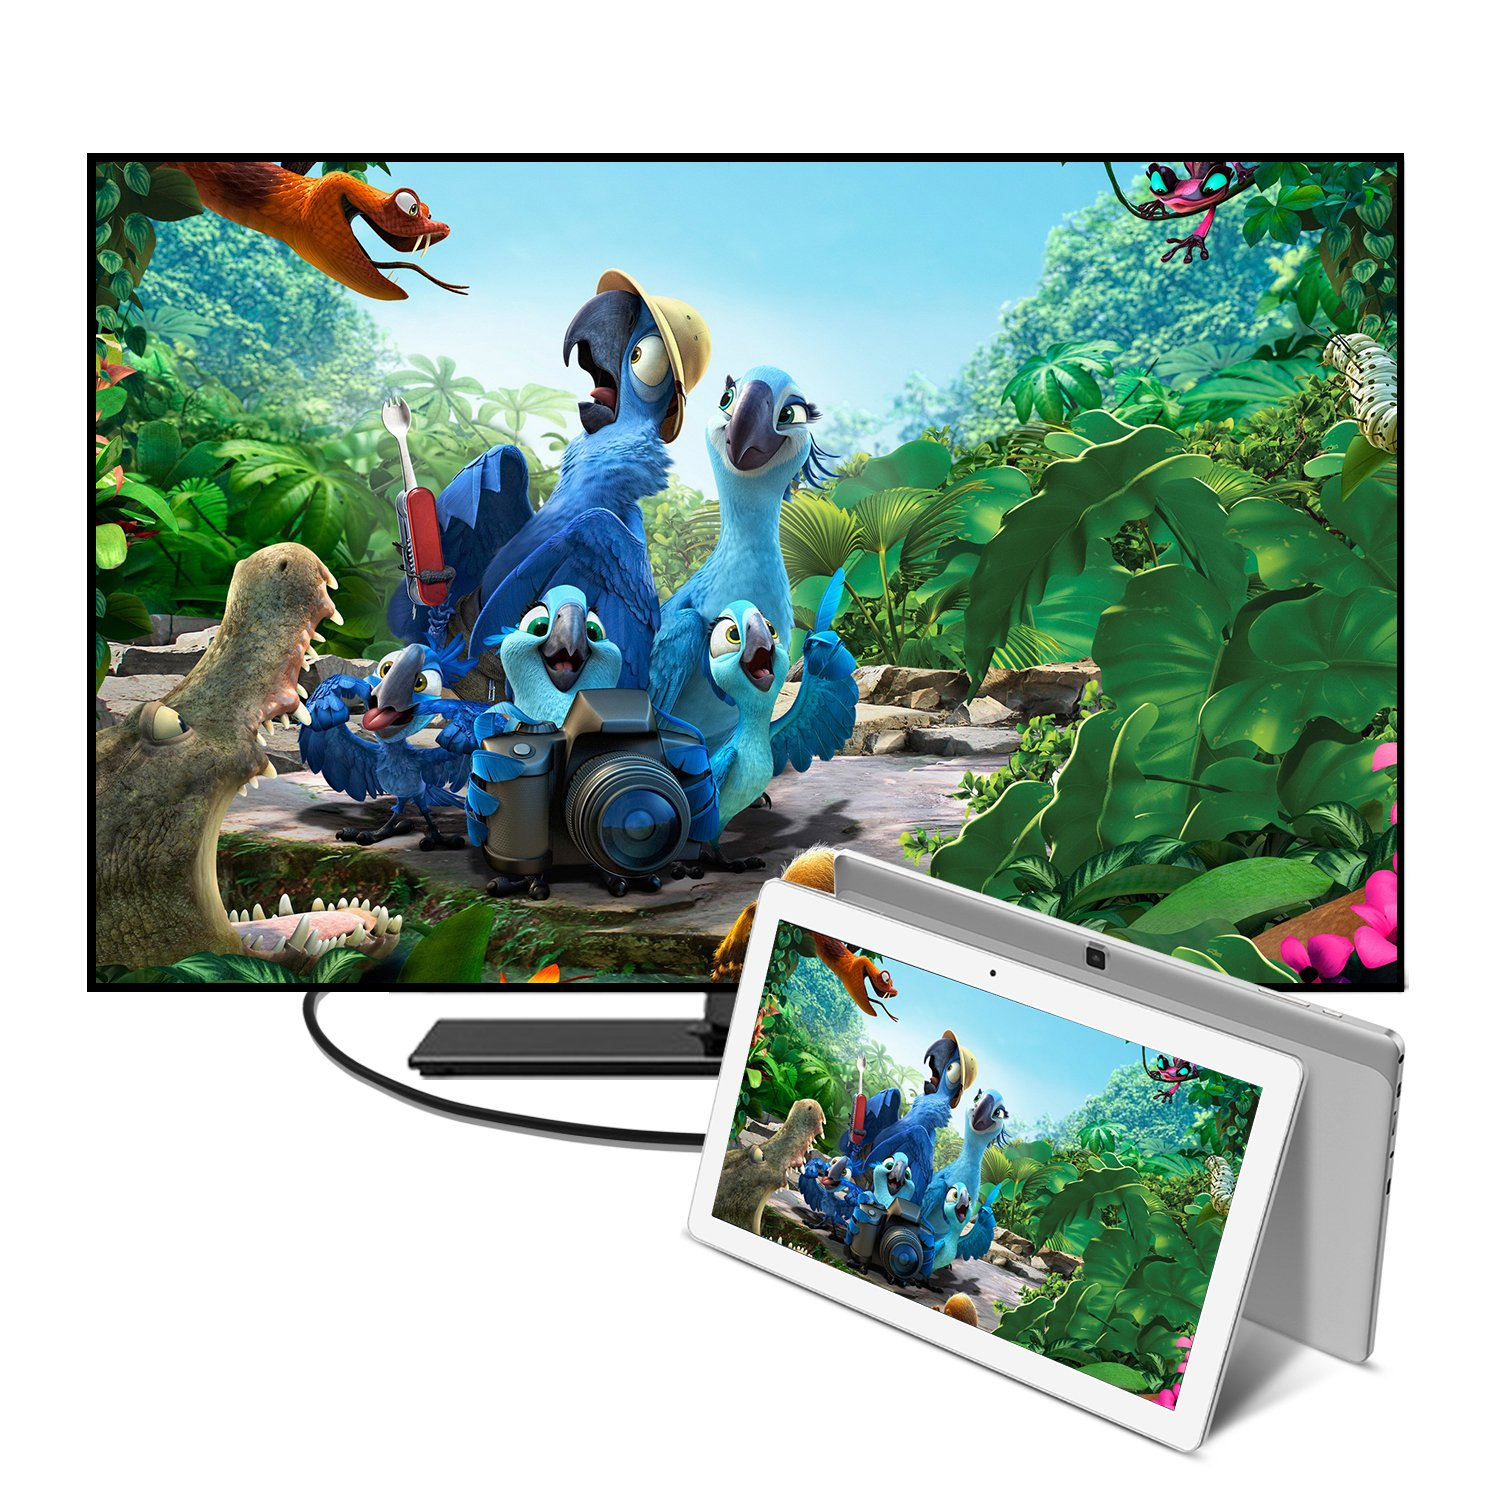 ALLDOCUBE iPlay10 / U83 10.6 inch 1920 x 1080 IPS Display Screen Tablet, Cube Android 6.0 Tablet Quad Core MTK MT8163 64-bit 1.3Ghz, 2GB+32GB, Support 5Ghz + 2.4Ghz WiFi and HDMI Output, White Silver by ALLDOCUBE (Image #6)